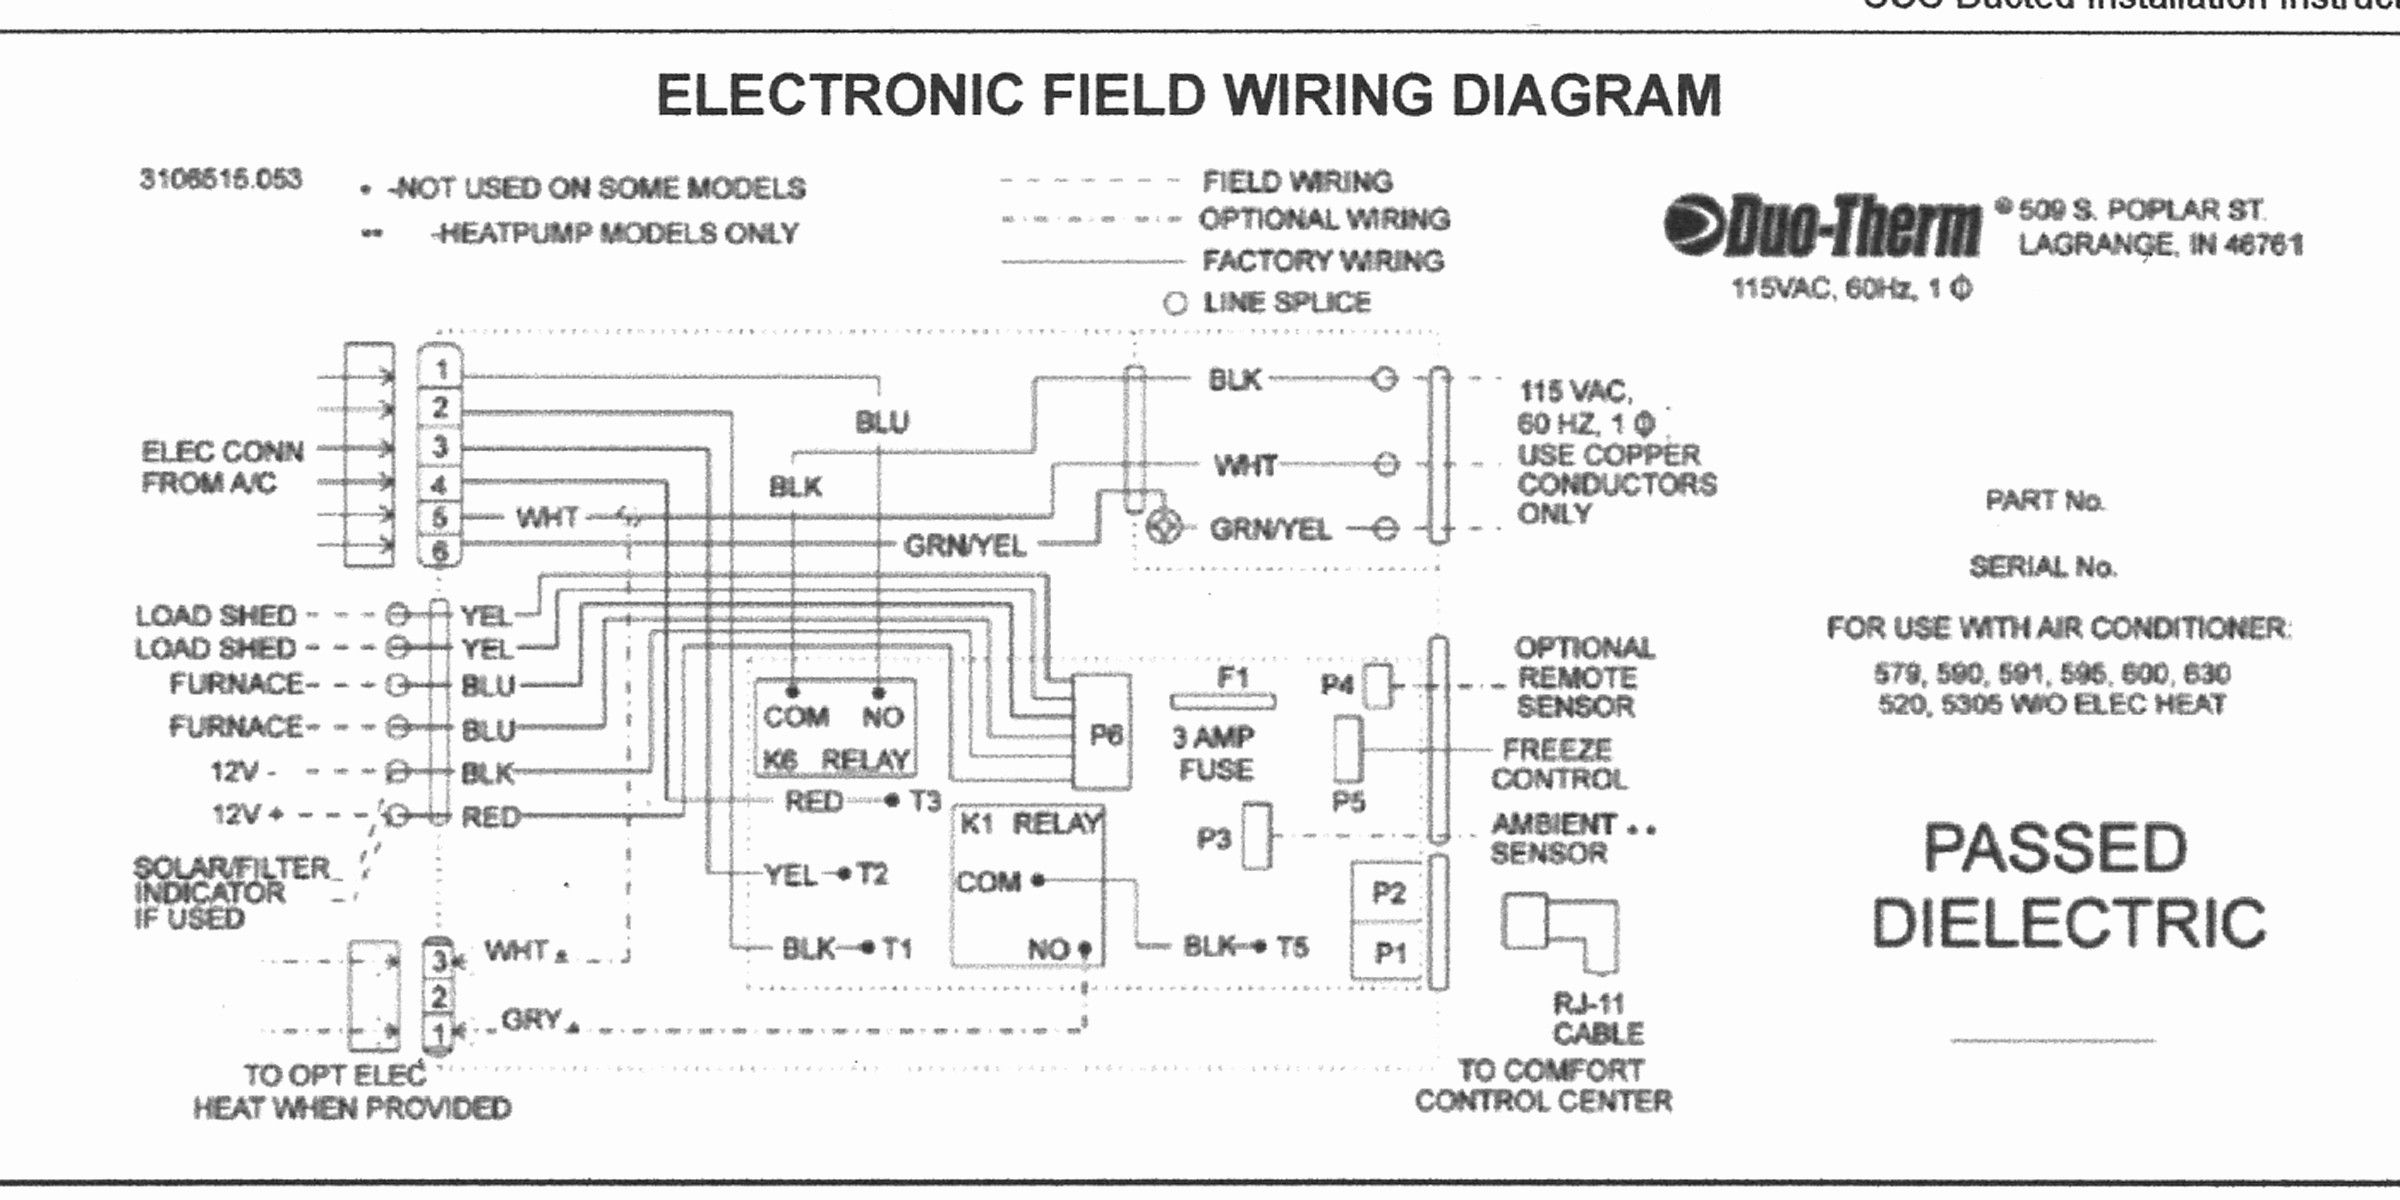 dometic ac wiring diagram wiring diagram services throughout dometic rv air conditioner wiring diagram [ 2400 x 1200 Pixel ]